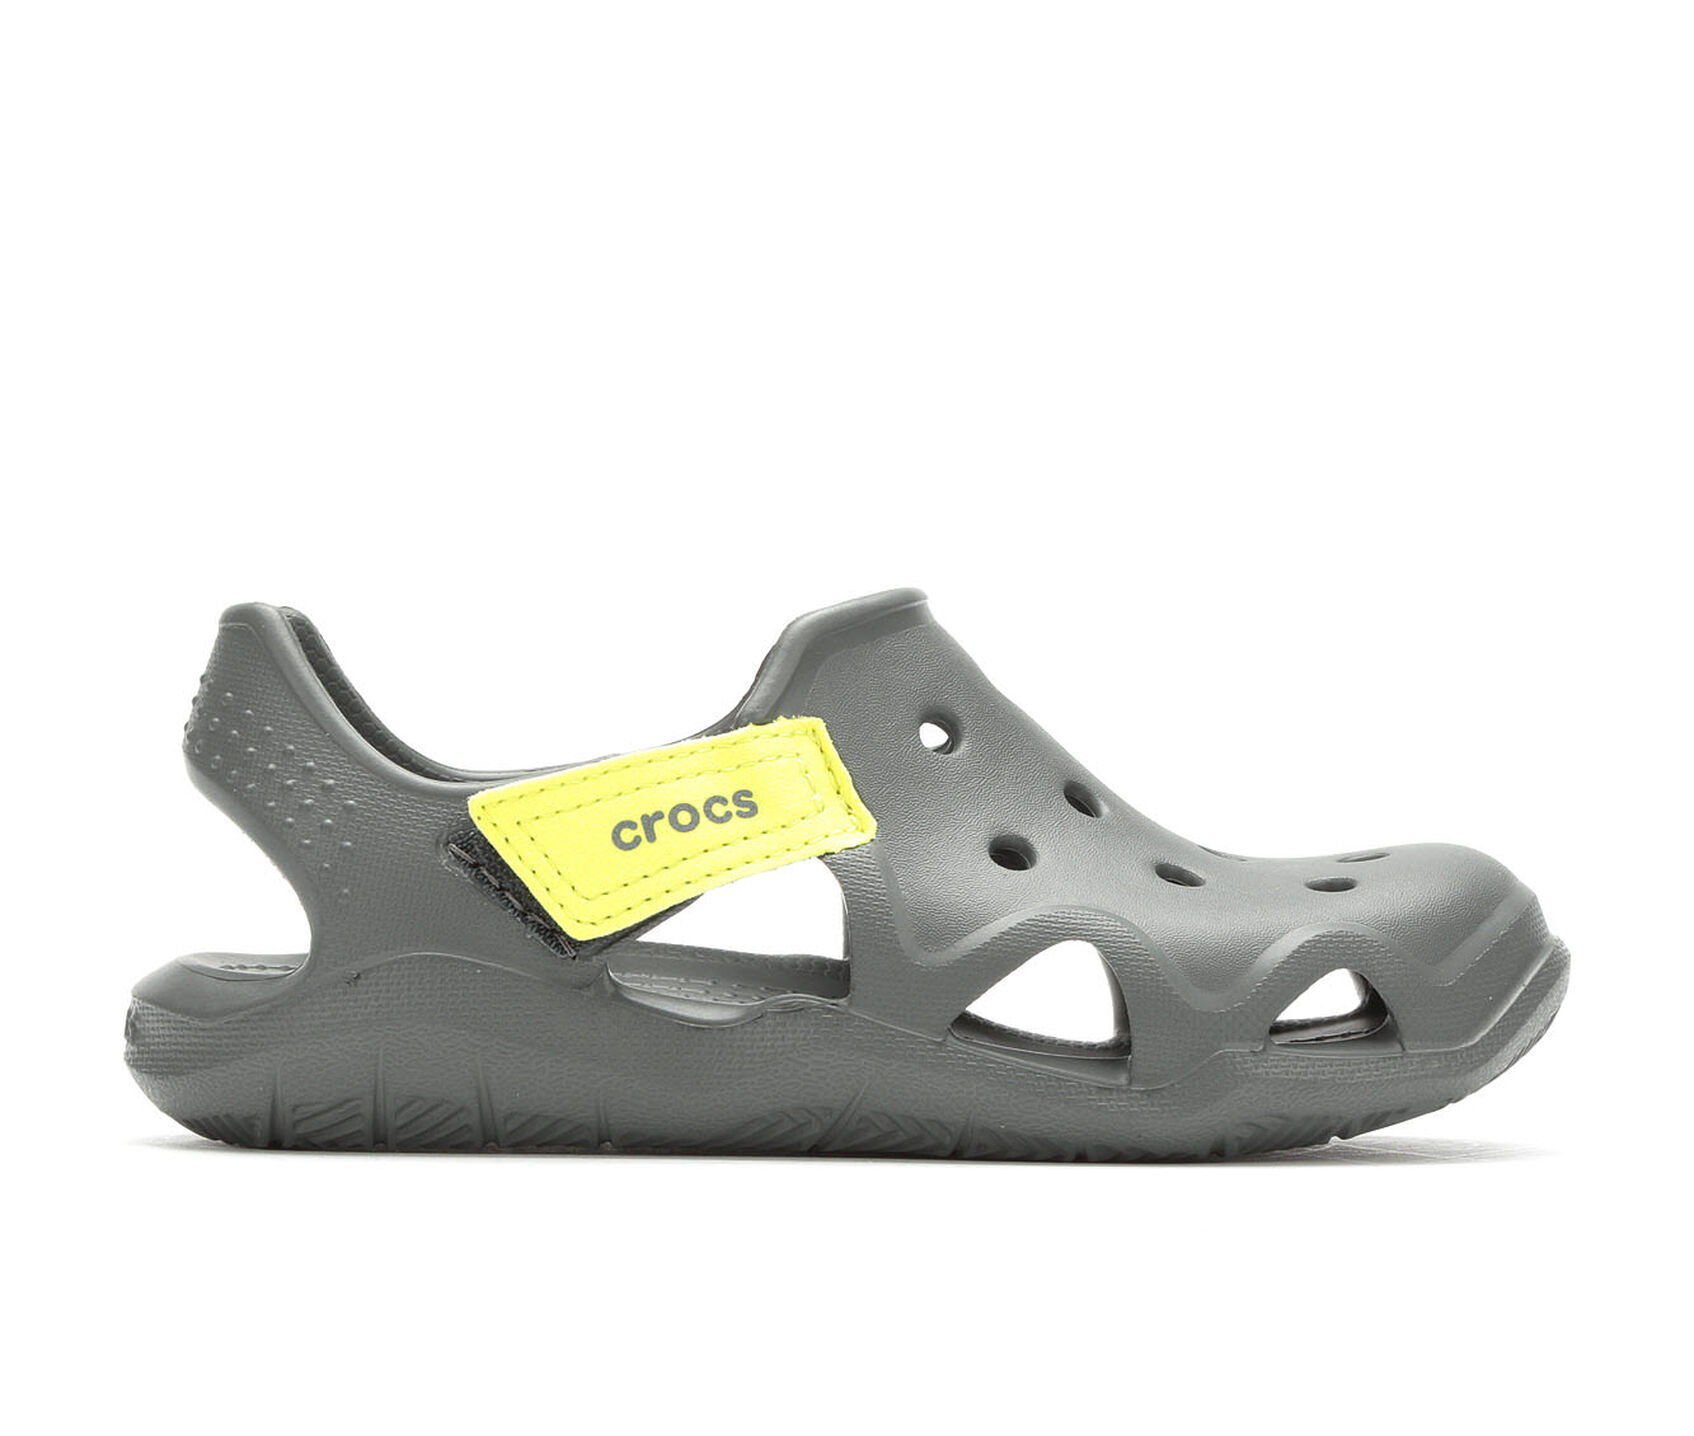 c7ae2e6b1 ... Crocs Little Kid Swiftwater Wave Sandals. Previous